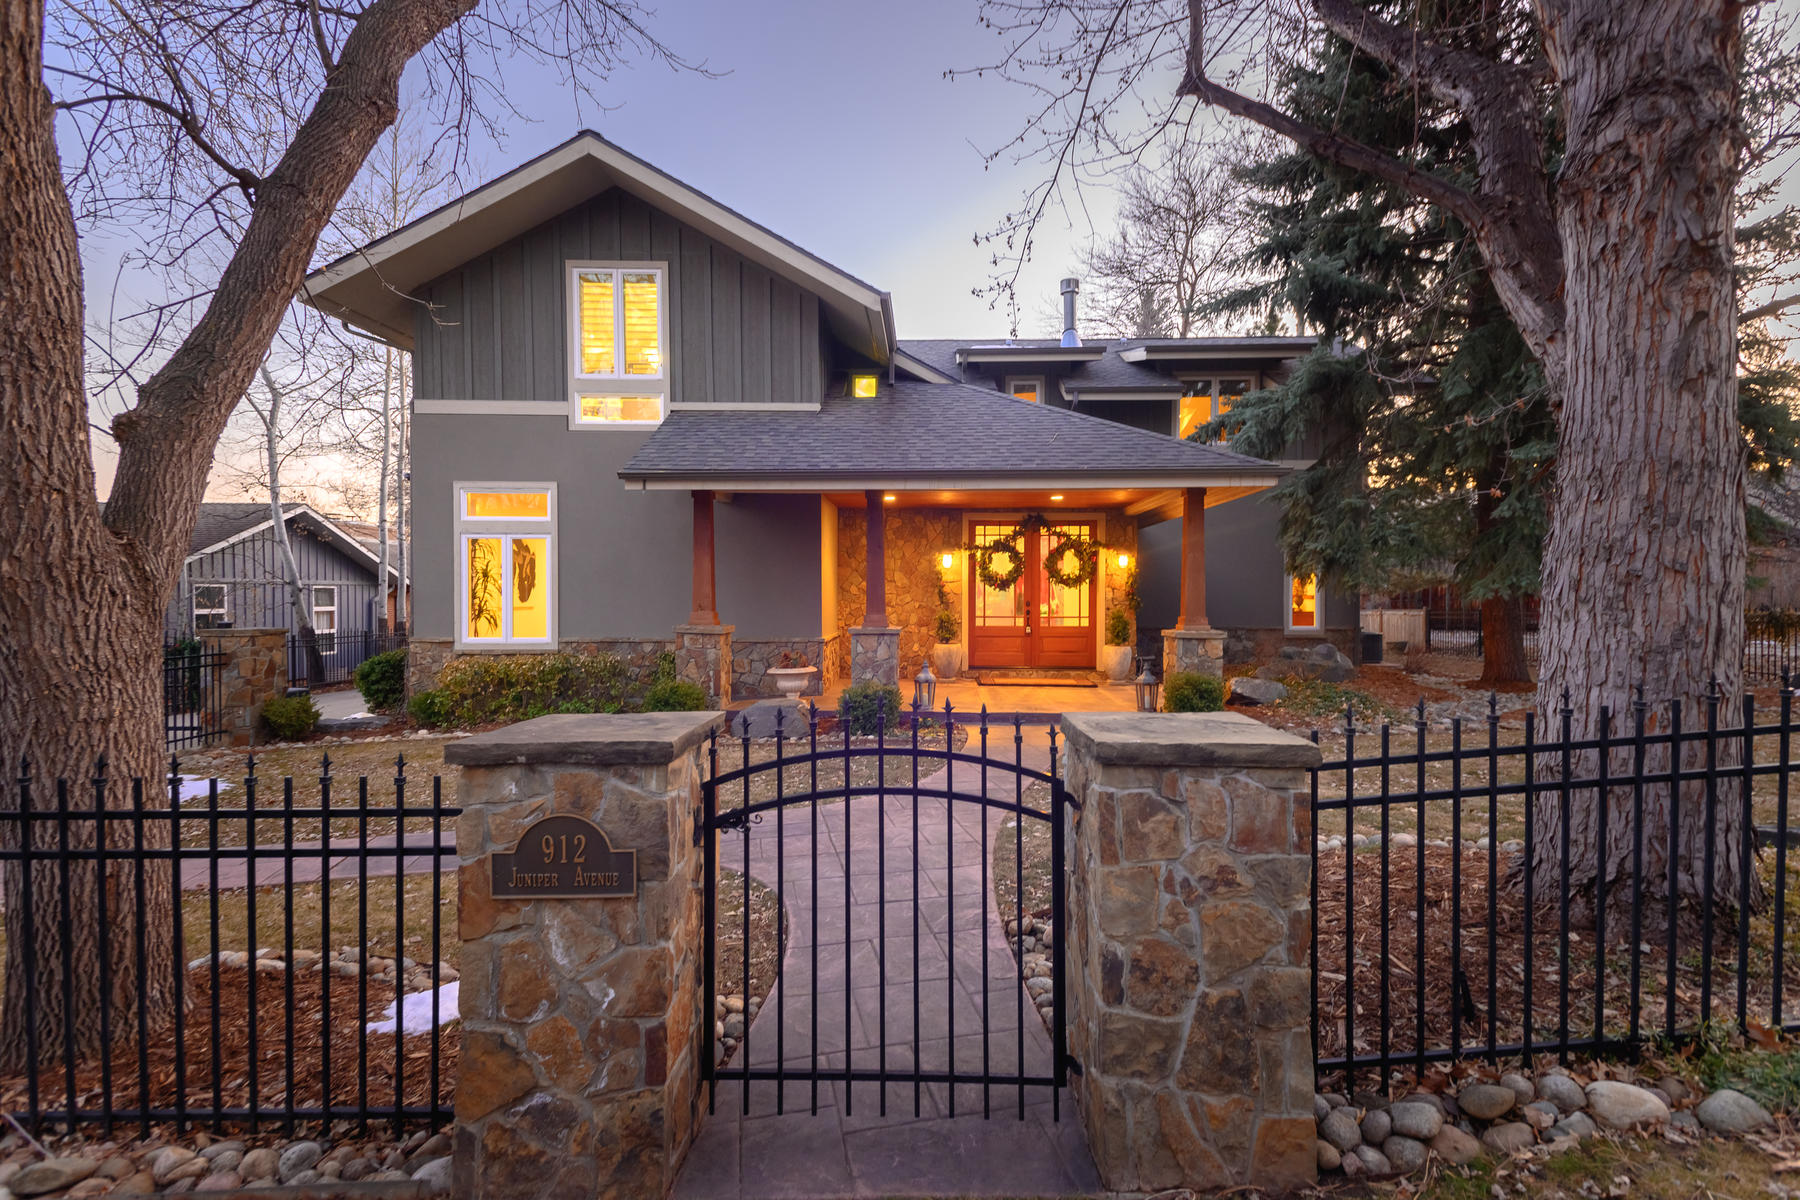 Single Family Homes for Sale at Refined Modern Craftsman With Guest Coach House 912 Juniper Ave Boulder, Colorado 80302 United States